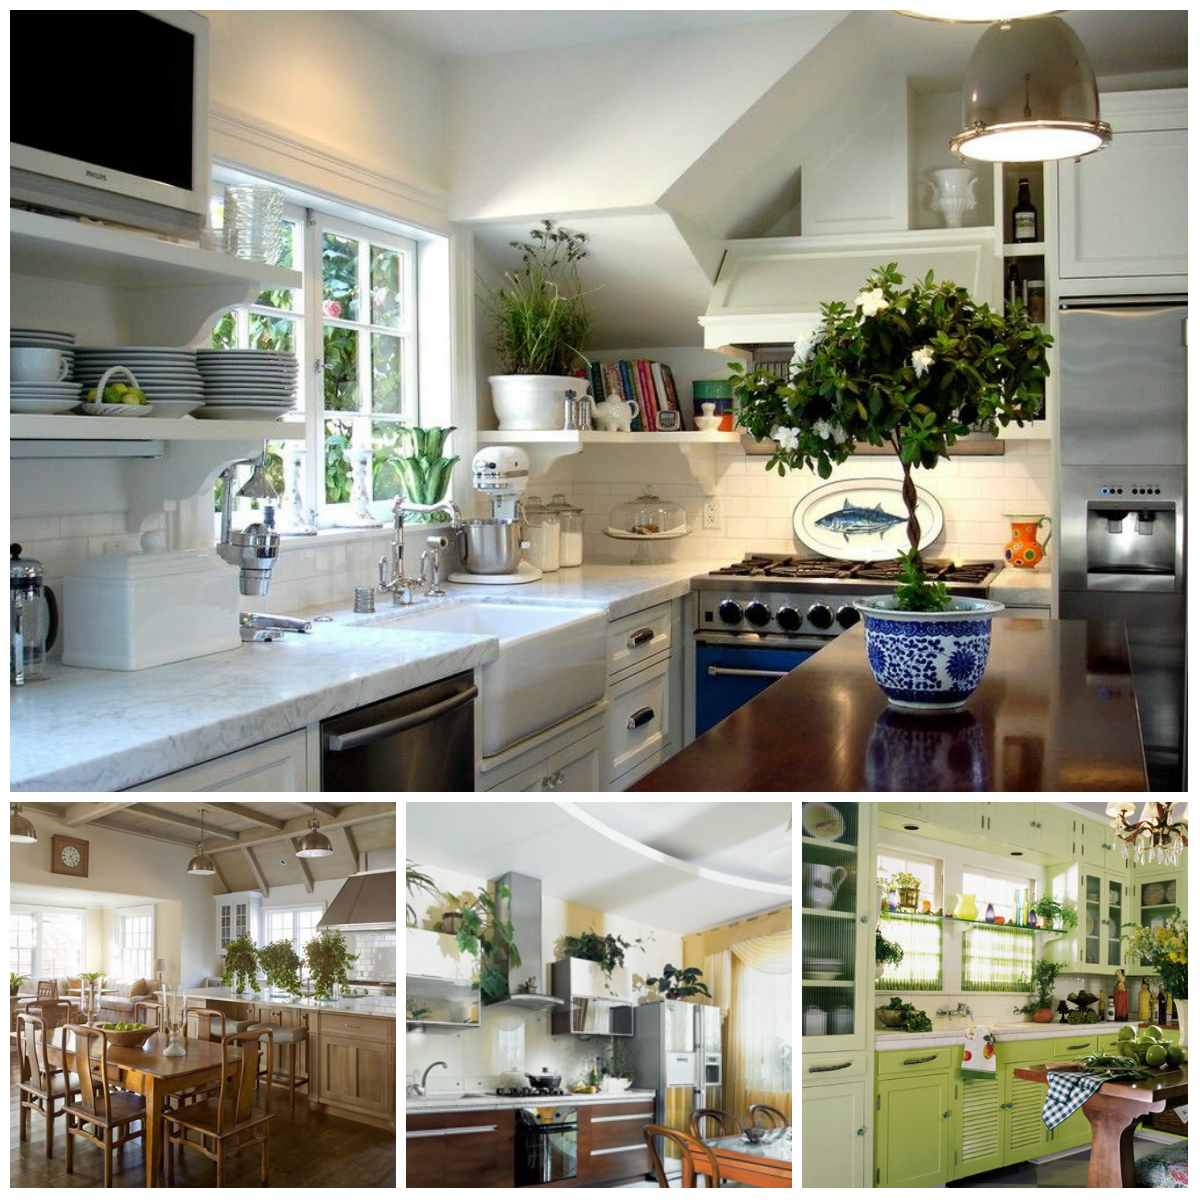 Interior For Kitchen: Potted Flowers In The Interior Of The Kitchen: What To